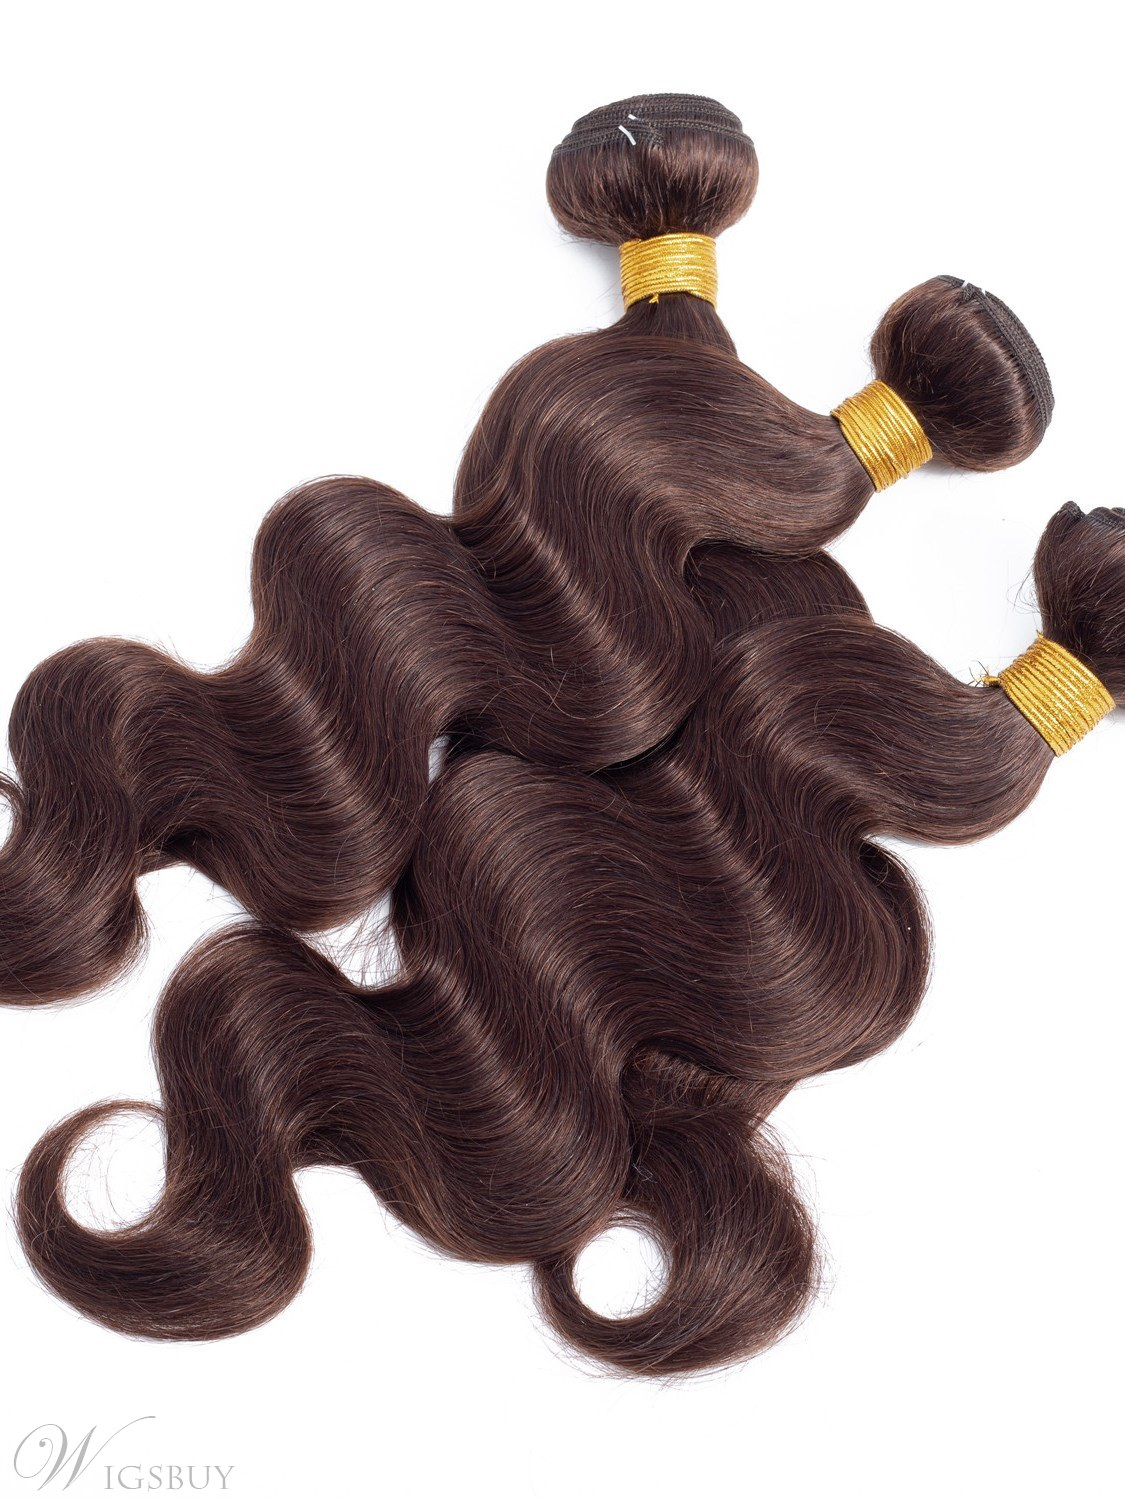 Wigsbuy Body Wave Human Hair Weave 4 Bundles Dark Brown